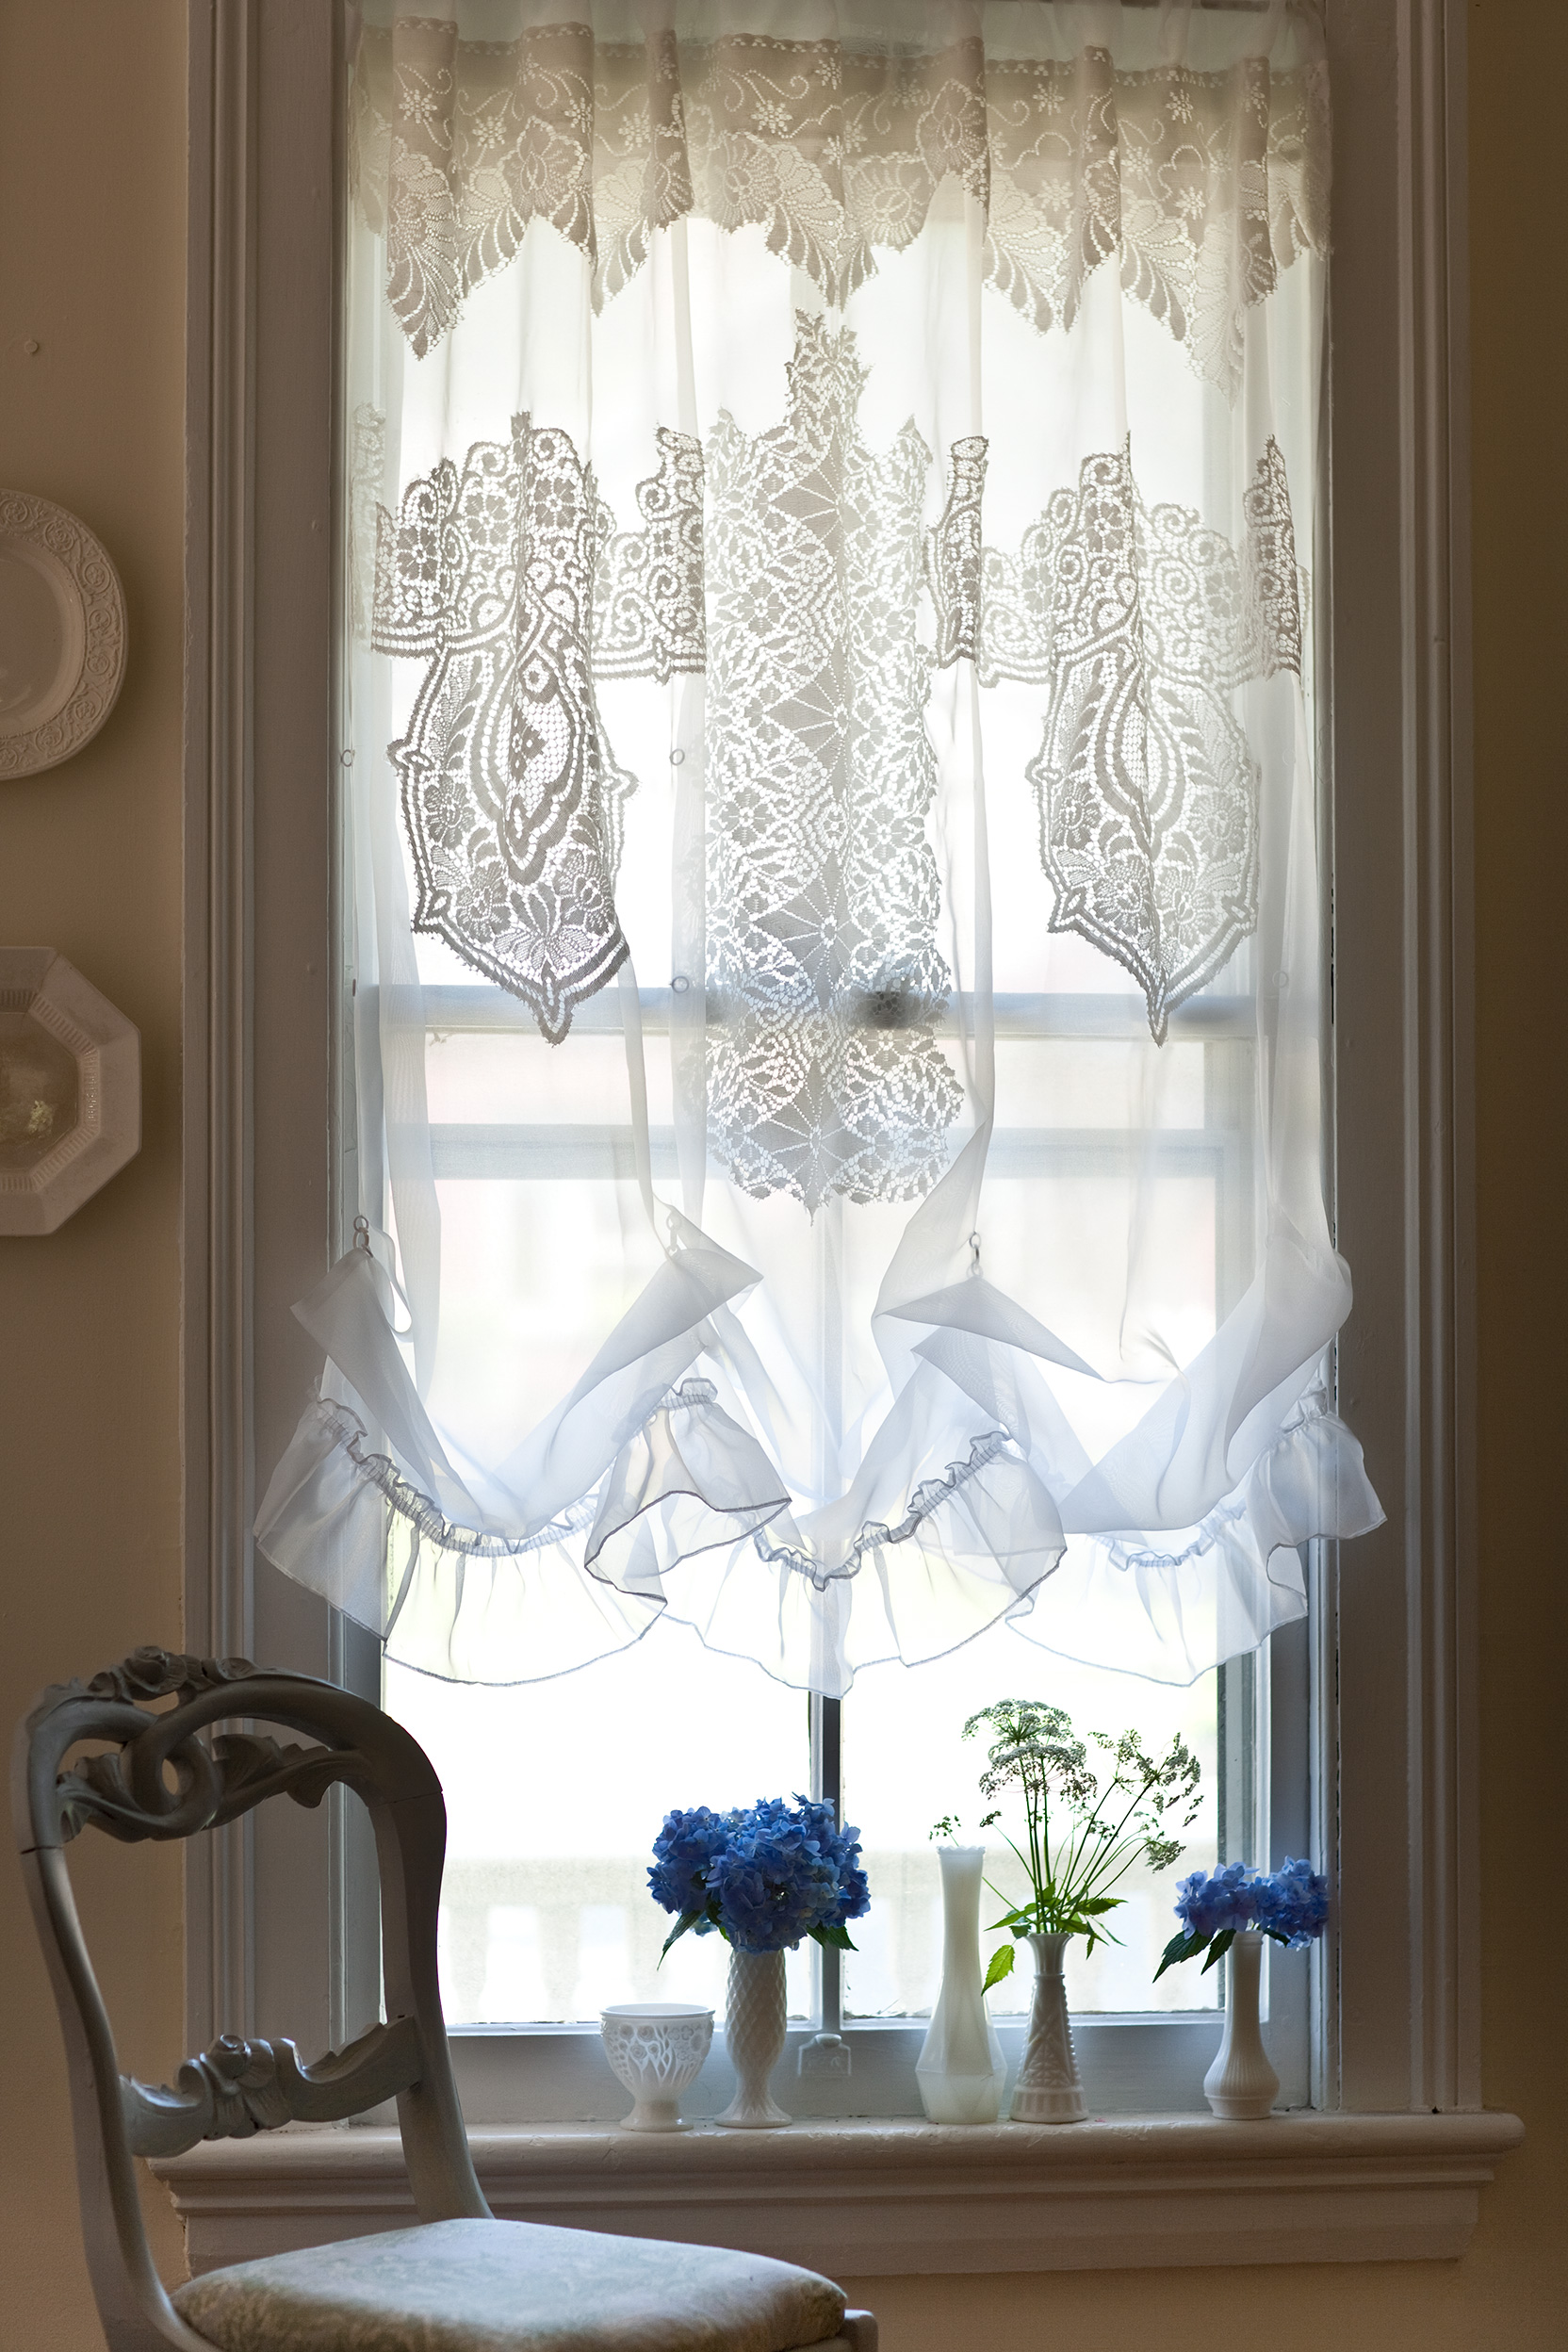 Window Treatment Ideas: Rustic Window Treatment Ideas